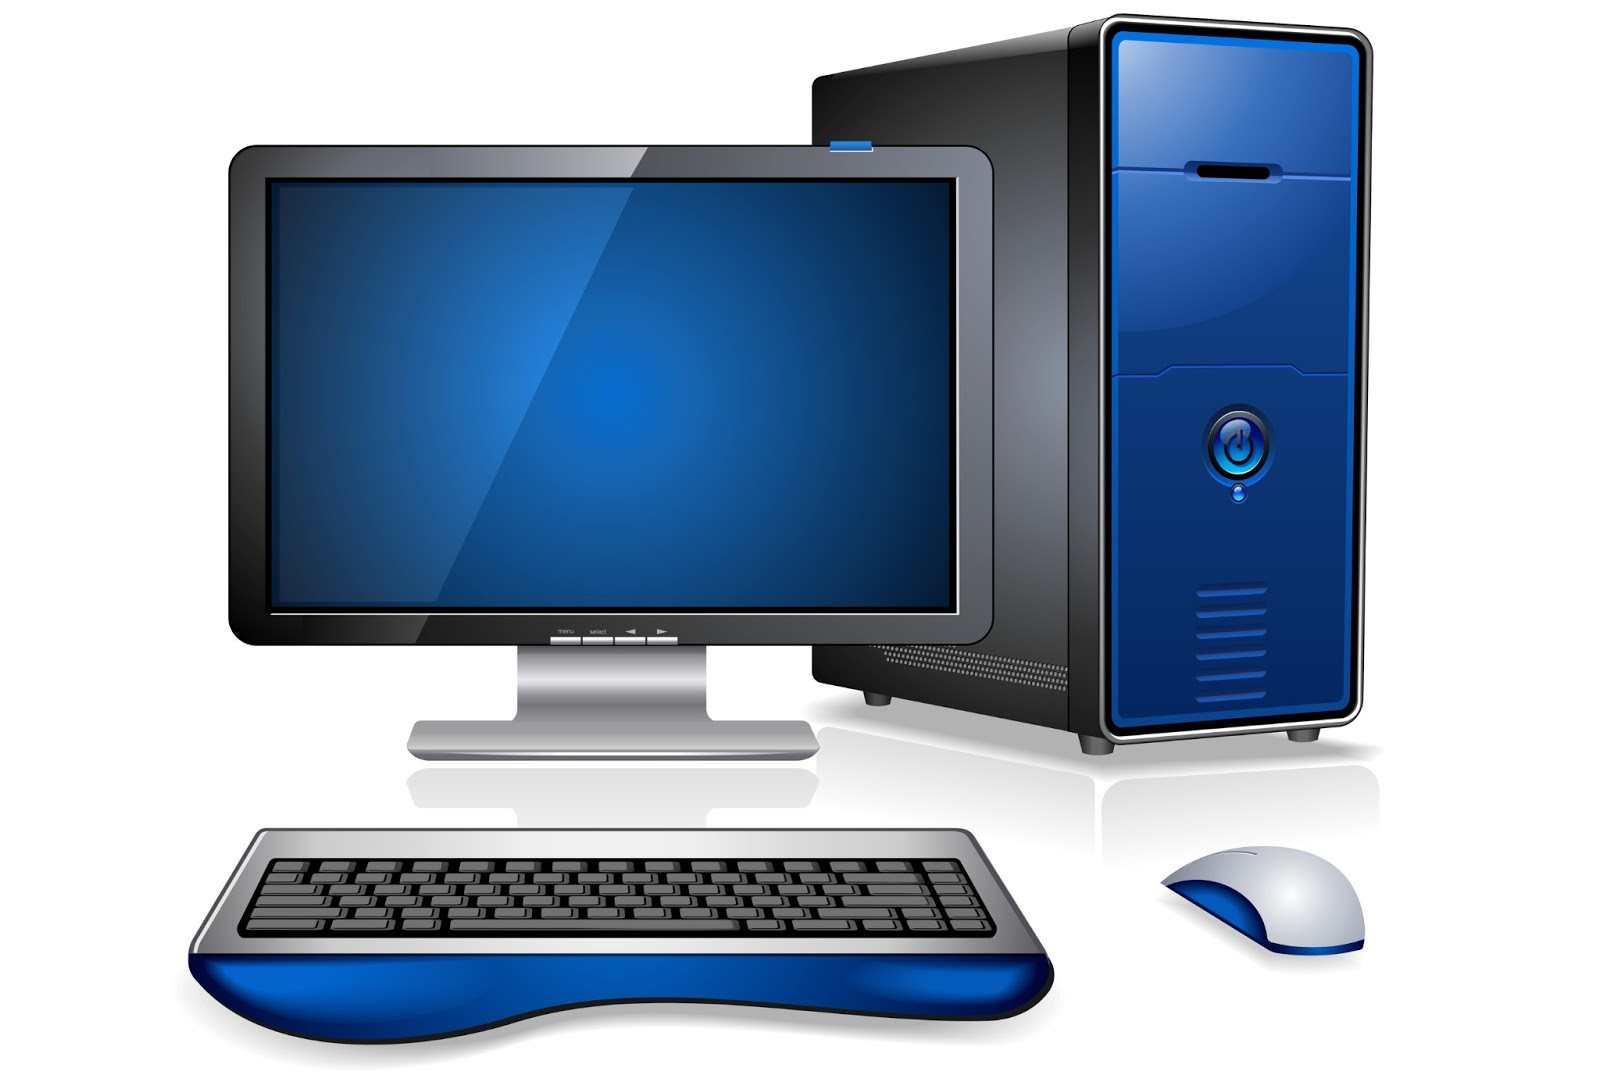 laptops essay importance of computer education happymela winnipeg computer repair blog desktop computer repair guides